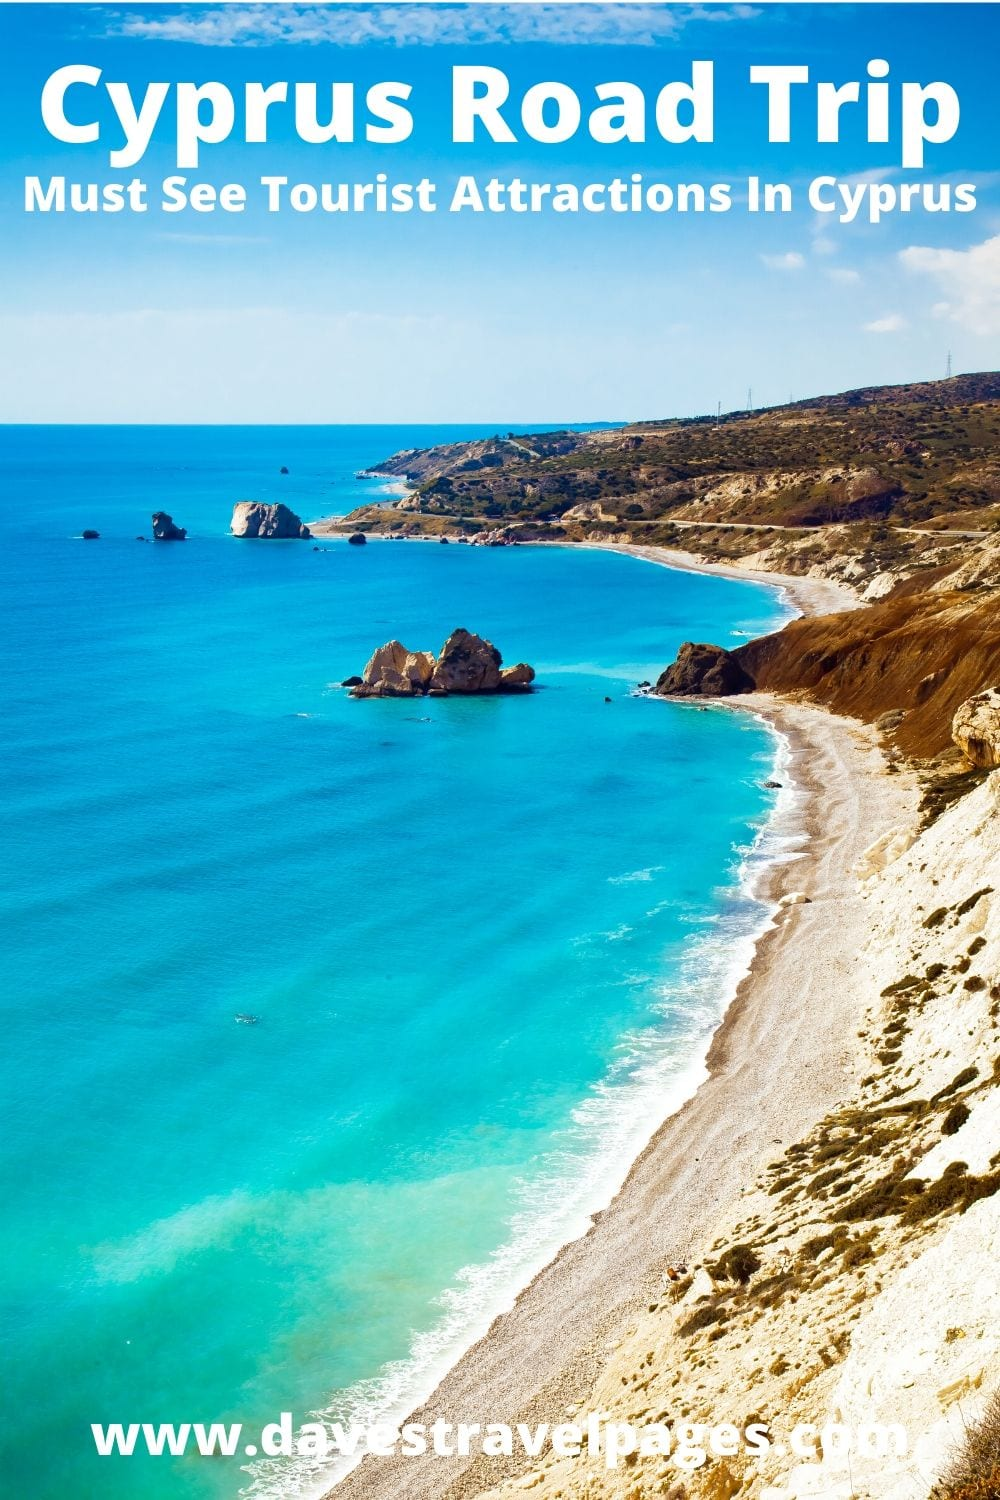 Cyprus Road Trip Itinerary: Must see attractions in Cyprus